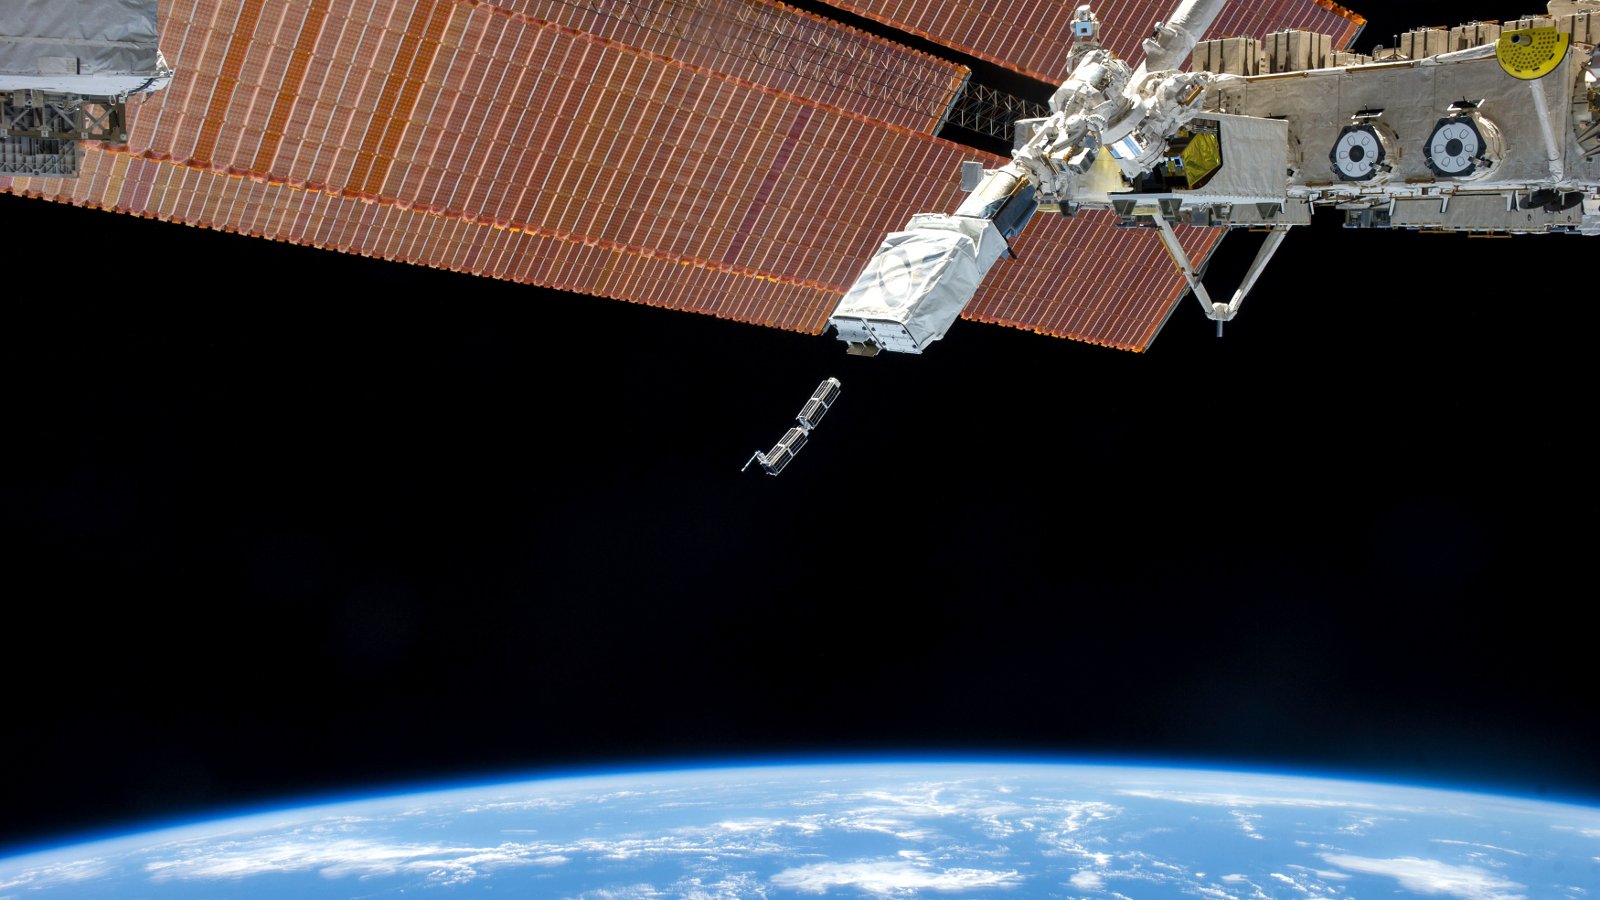 The Small Satellite Orbital Deployer (SSOD), in the grasp of the Kibo laboratory robotic arm, is photographed by an Expedition 38 crew member on the International Space Station as it deploys a set of NanoRacks CubeSats in this February 11, 2014 NASA photo. The CubeSats program contains a variety of experiments such as Earth observations and advanced electronics testing. Station solar array panels, Earth's horizon and the blackness of space provide the backdrop for the scene.